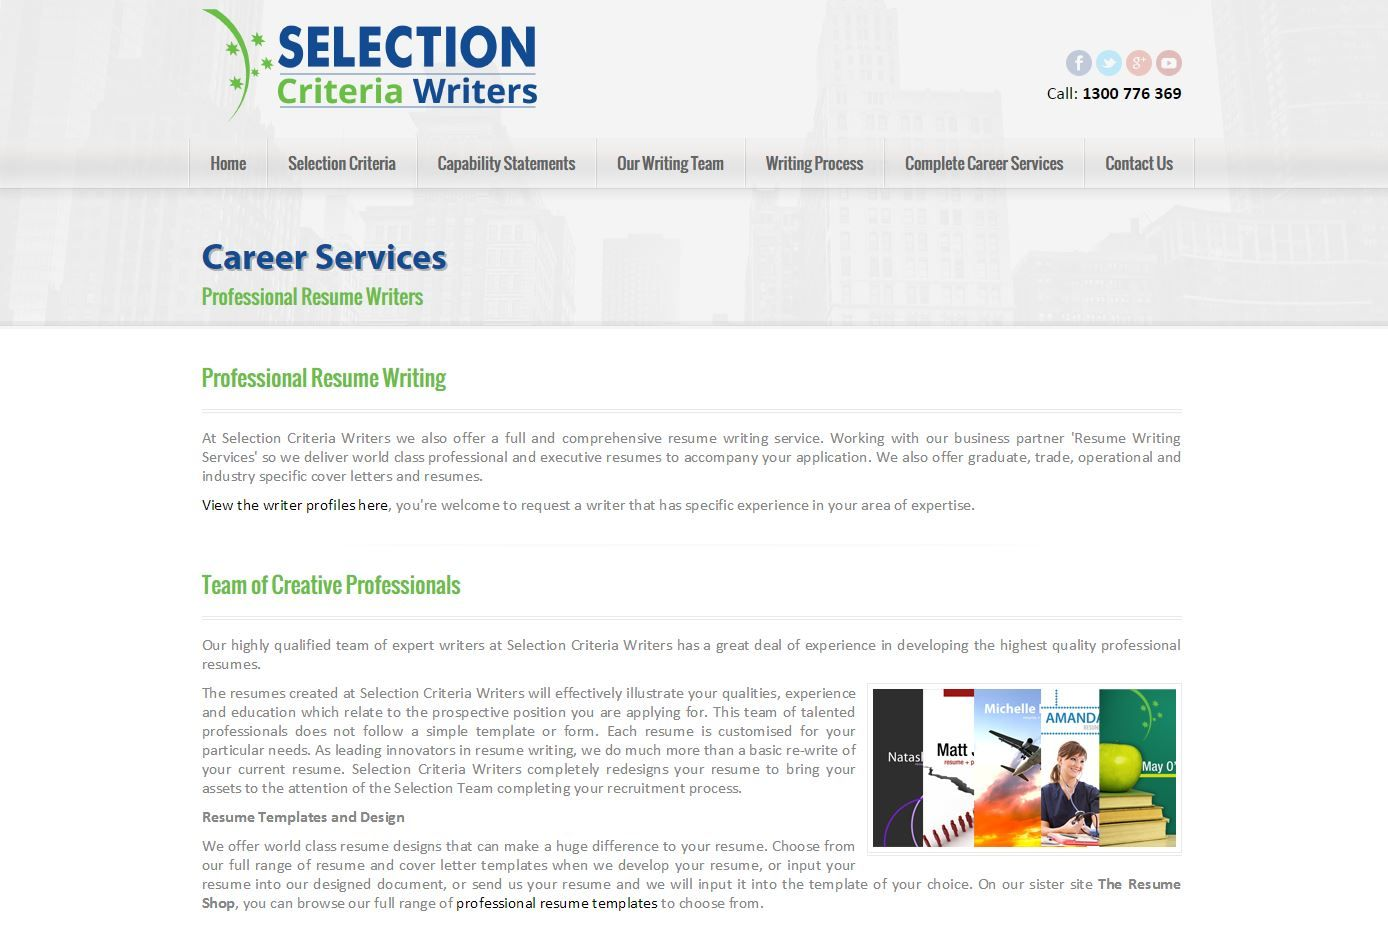 Resume writing service process